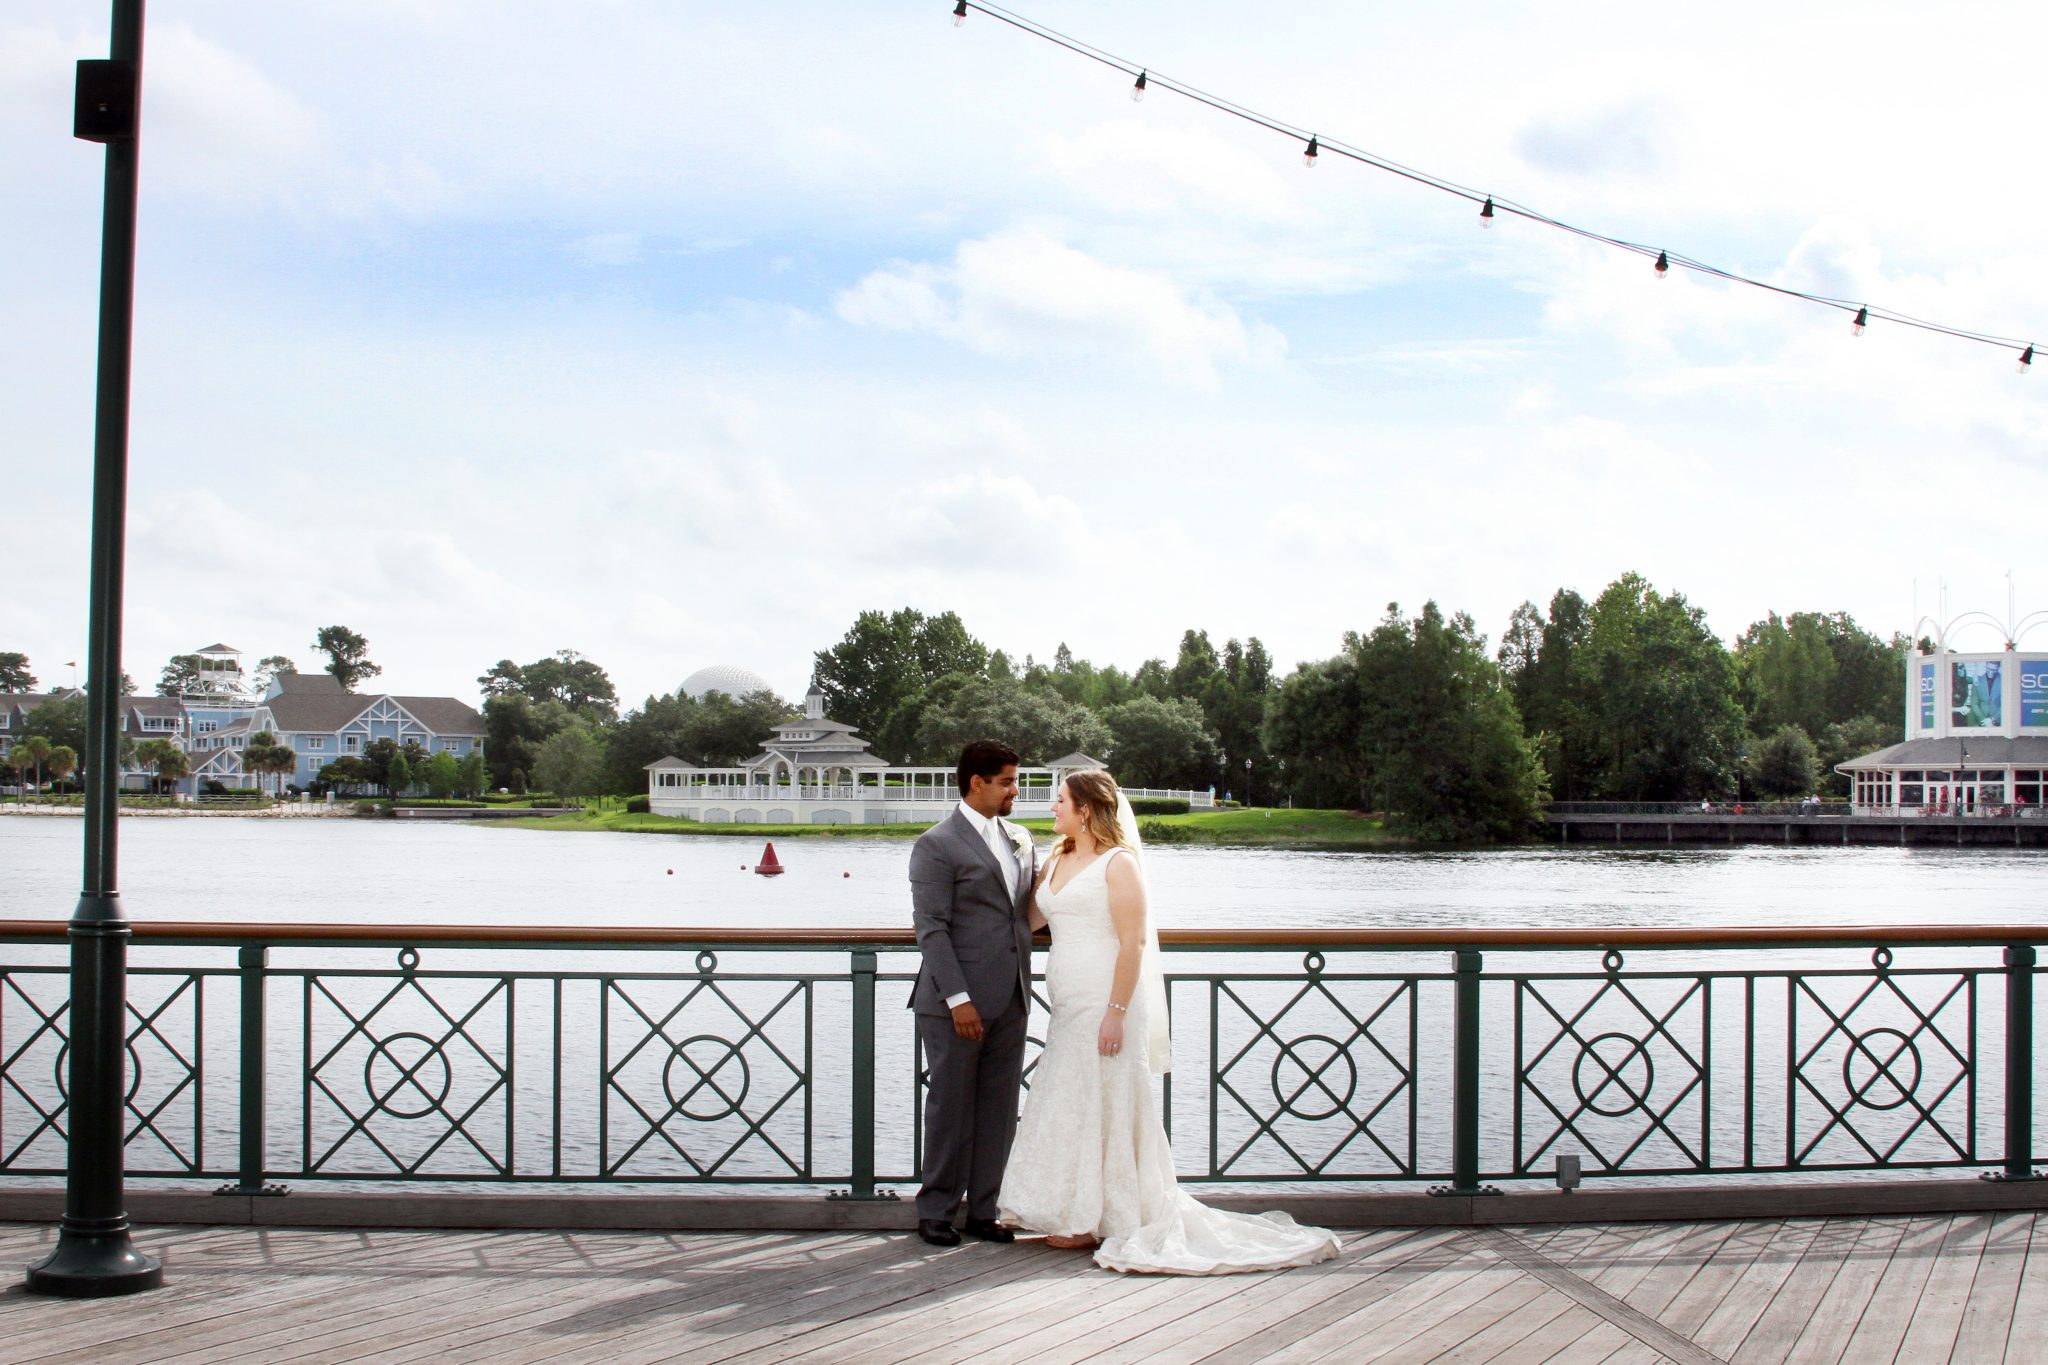 Swan and Dolphin Disney Wedding | Karen and Vishaal